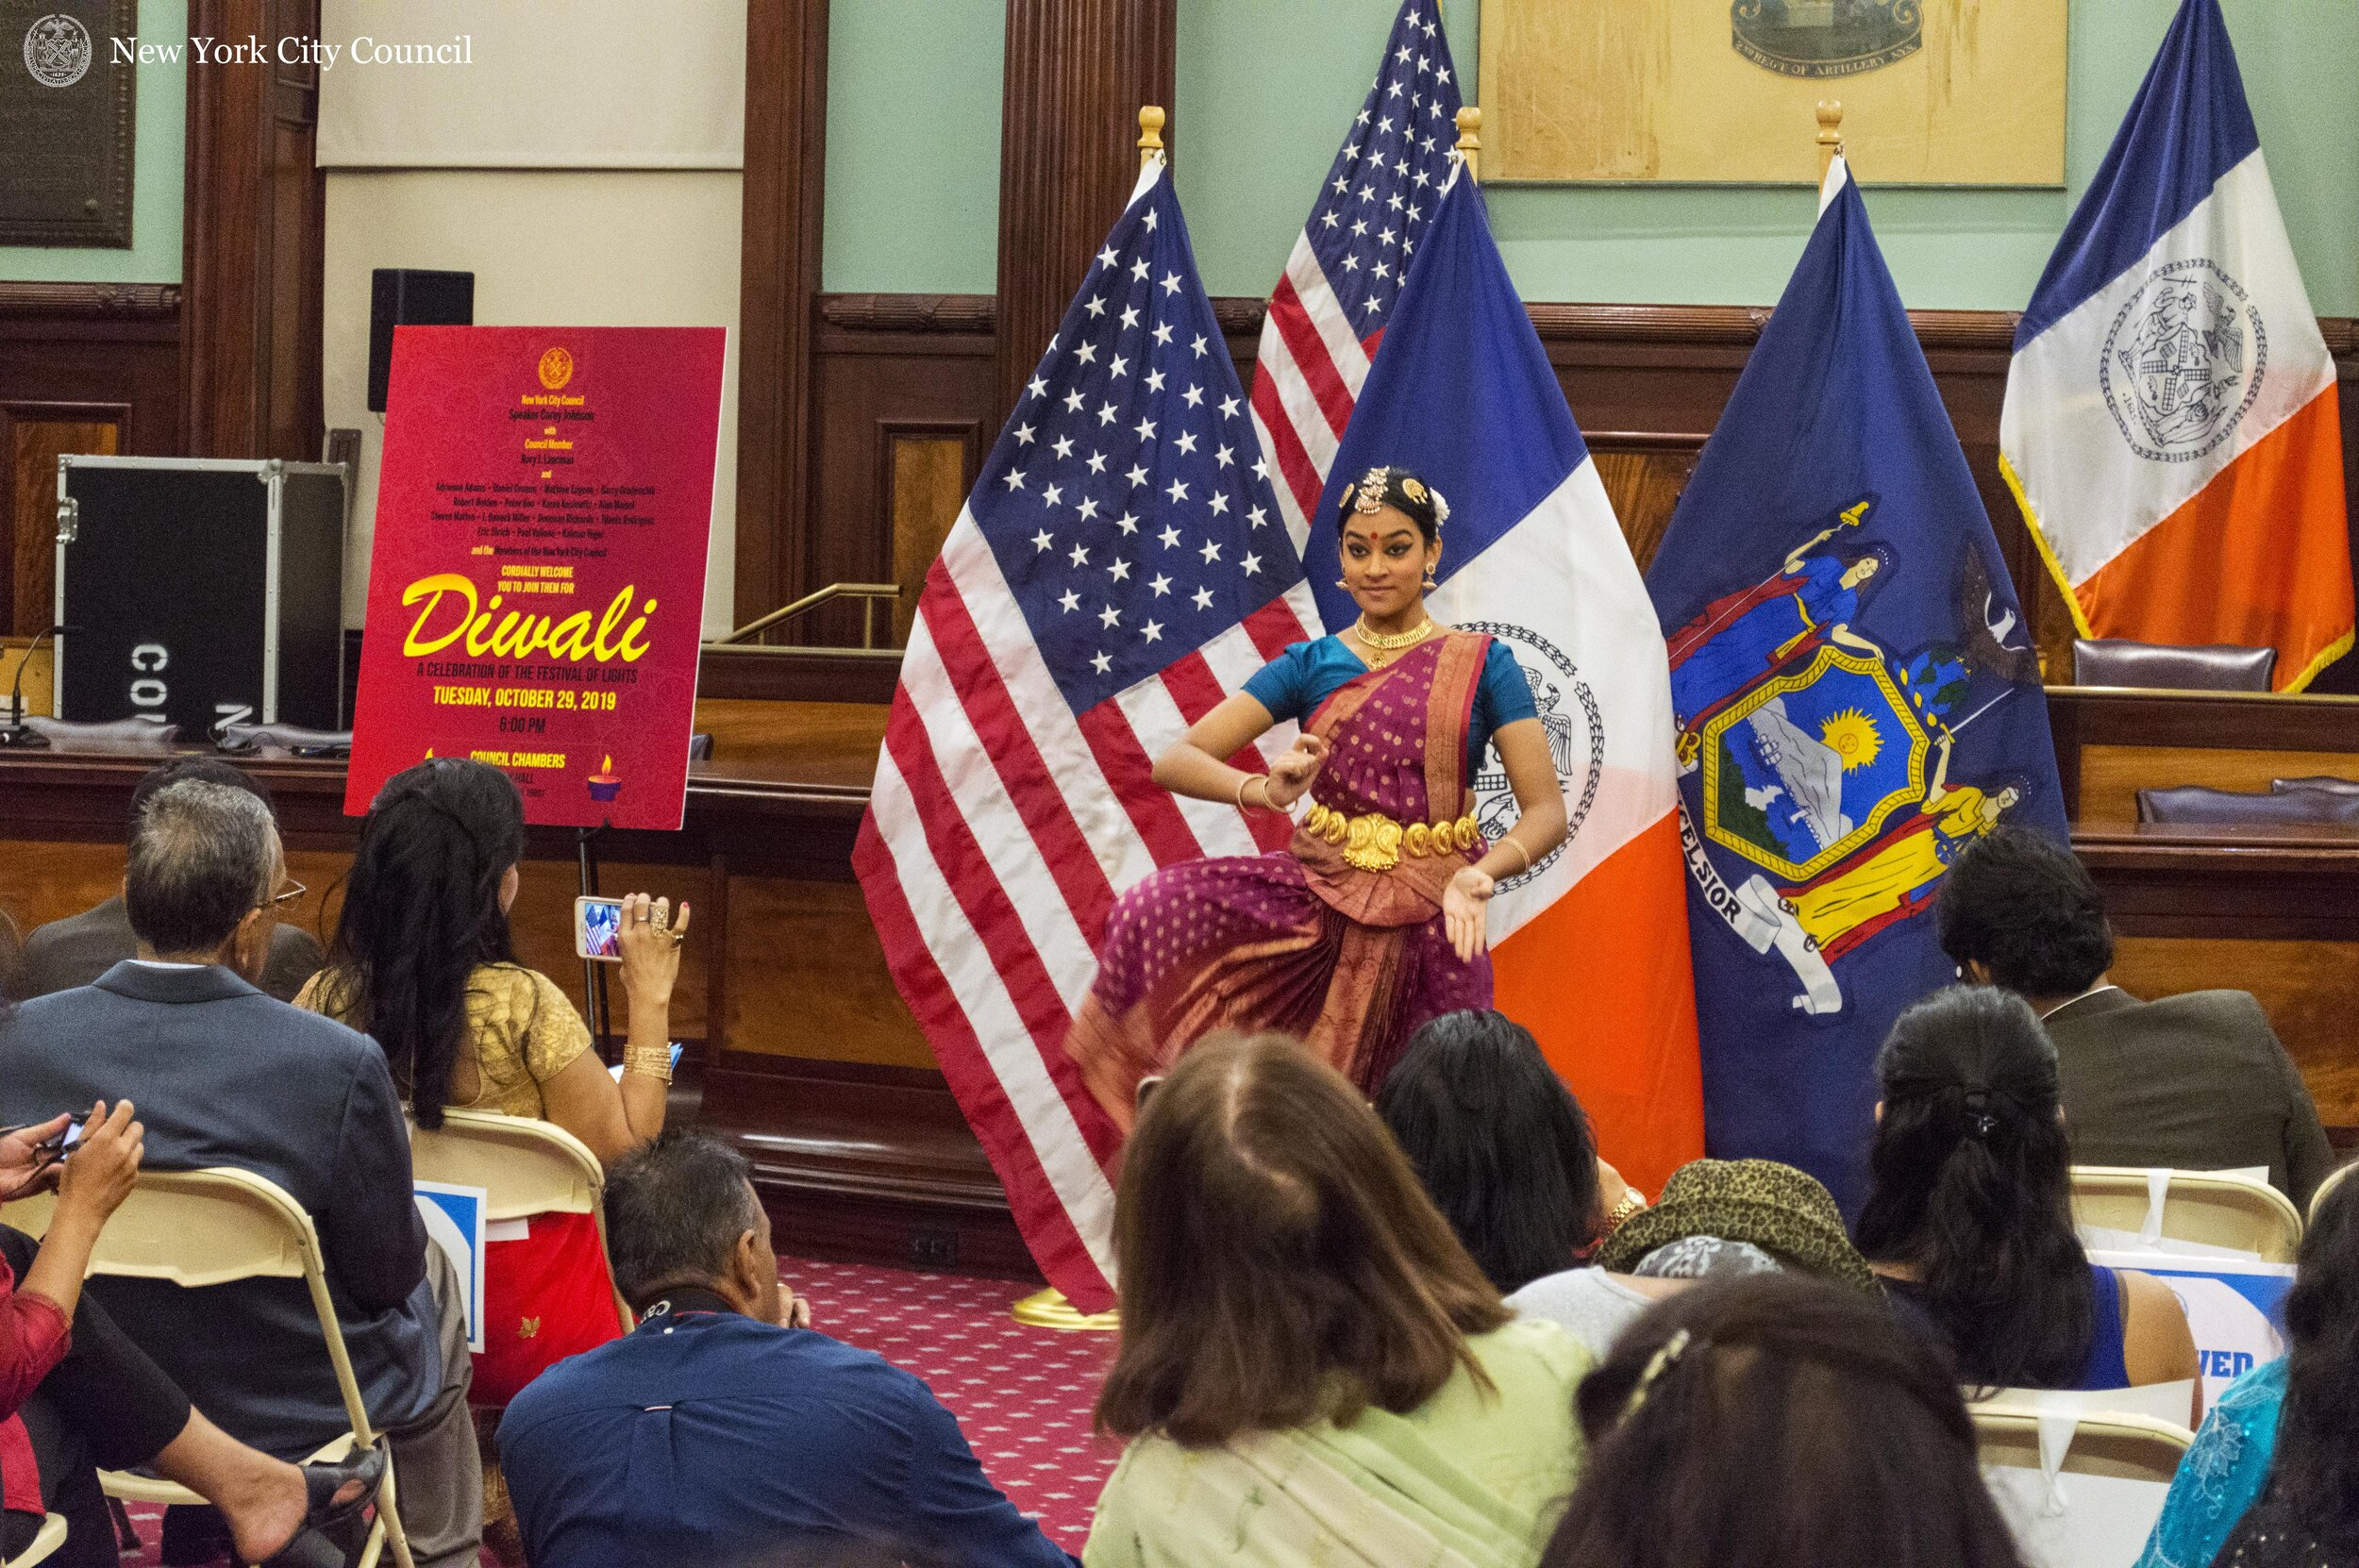 A performer dances during a Diwali celebration at City Hall last week. Photo courtesy of the New York City Council.